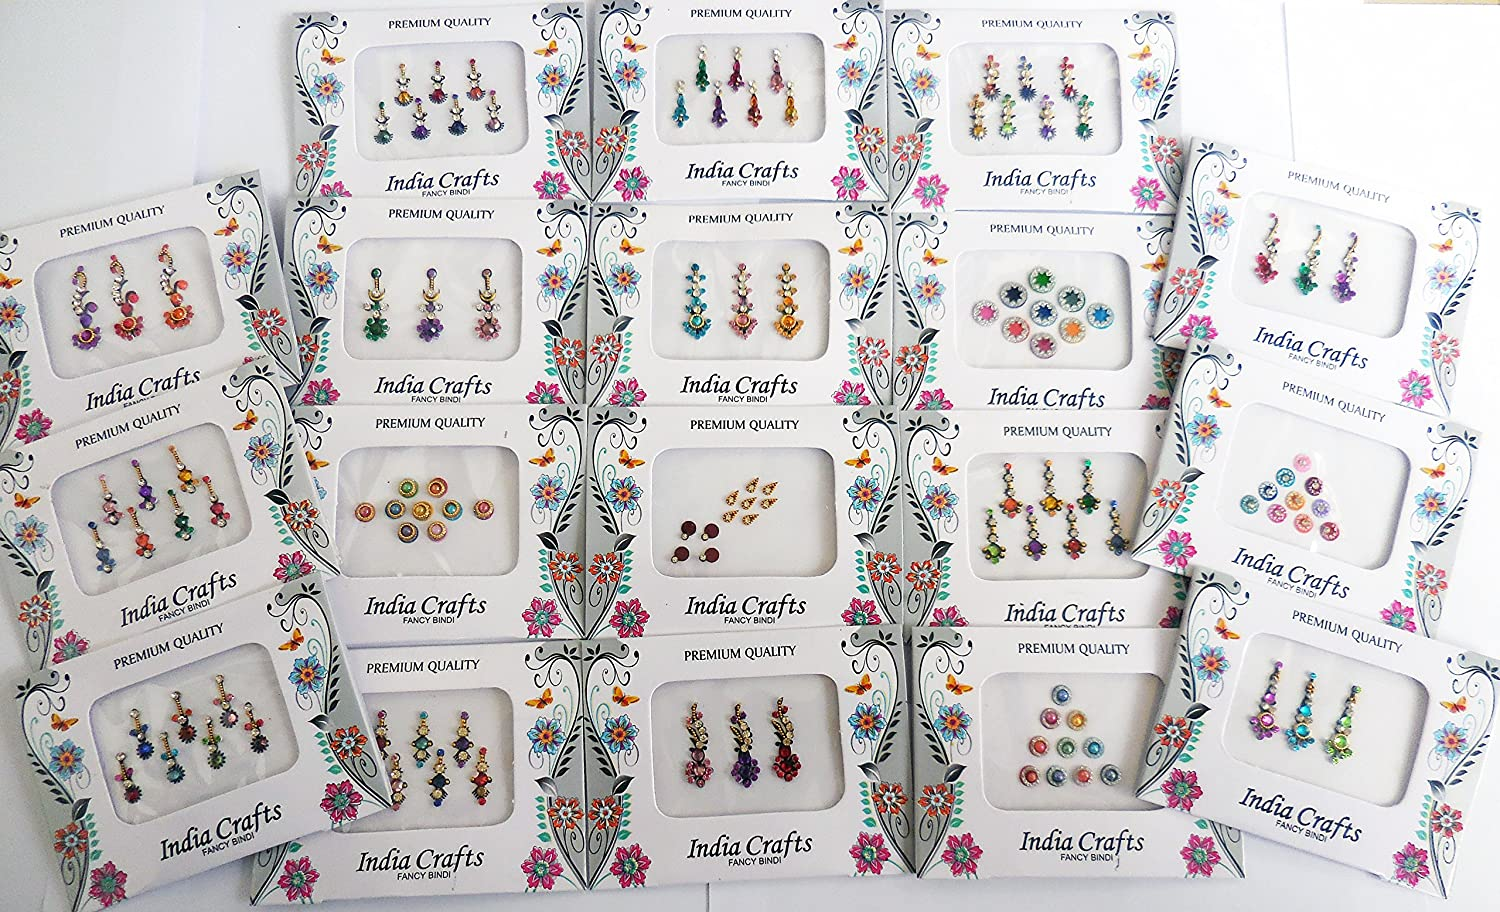 12 Combo Bindi Packs All in One- Multicolored Face Jewels Bindi Stickers Indian Forehead Tika Sheesham Ivy LLP